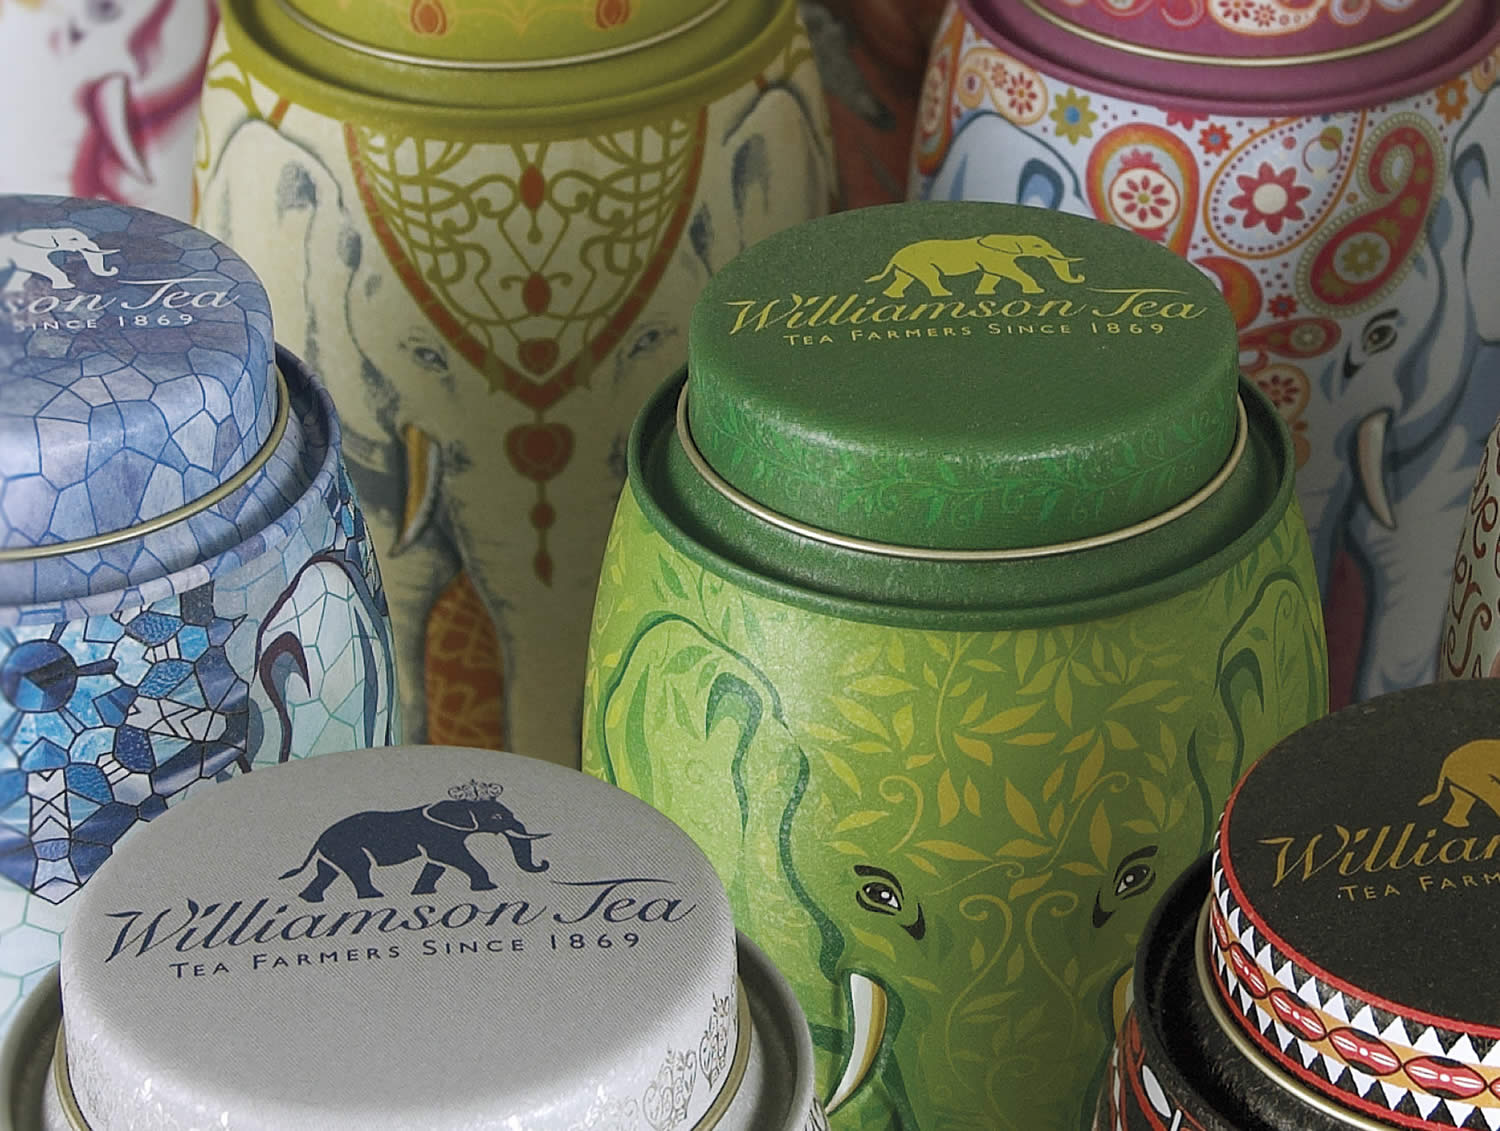 tin cans, tea, Williamson Tea Elephant Caddies Packaging by Springetts Brand Design Consultants